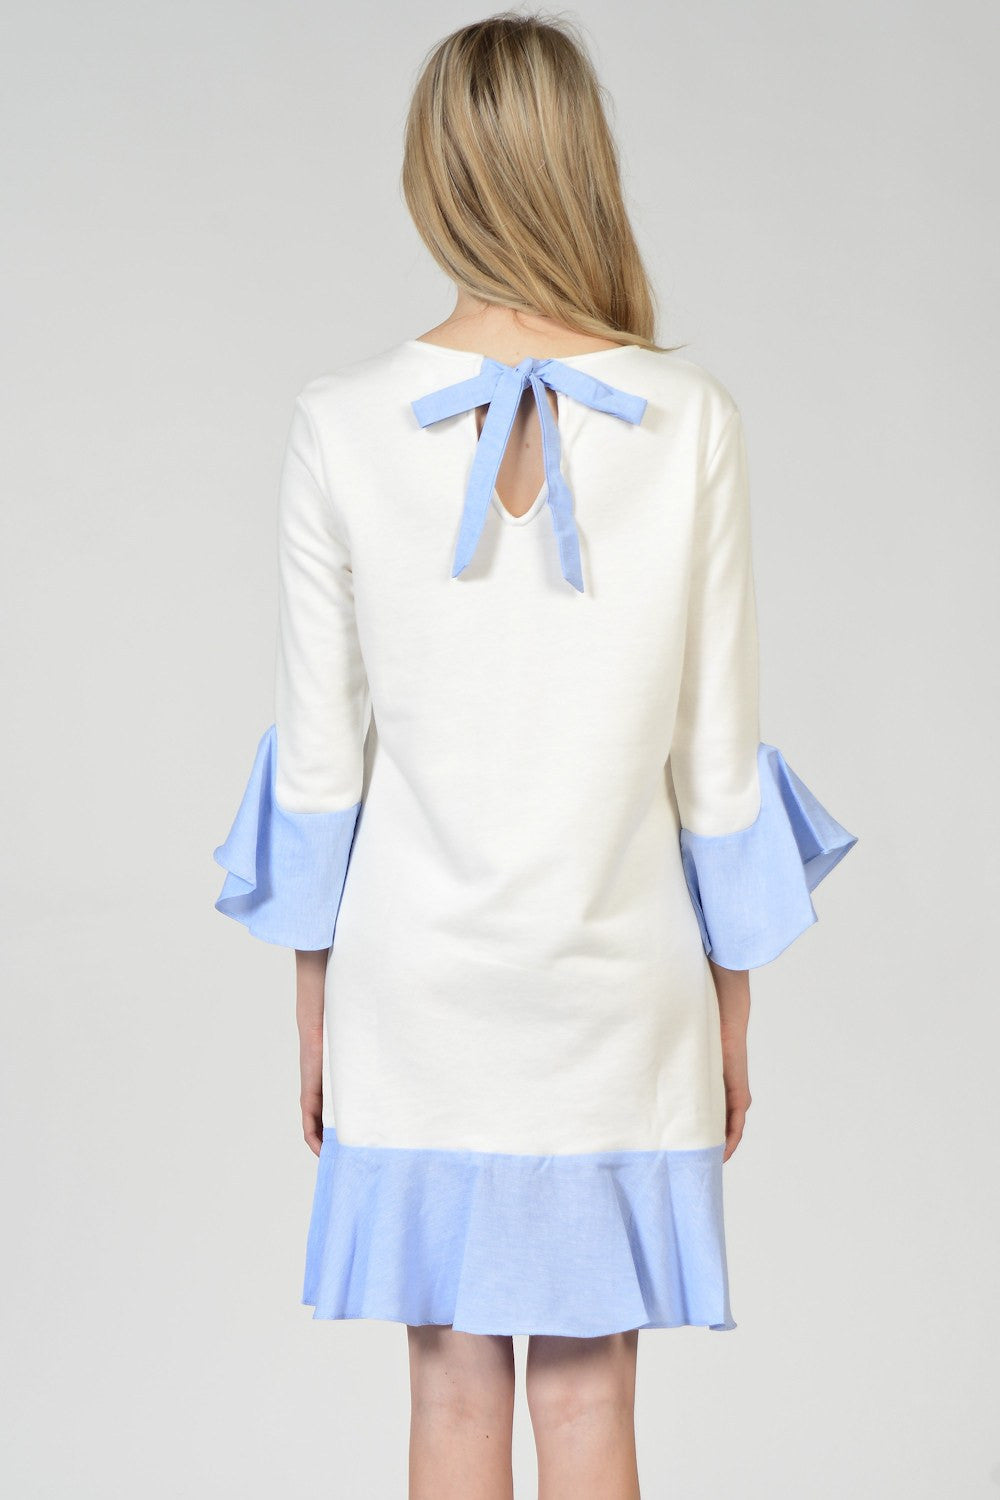 Blue Ruffle White Sweater Dress